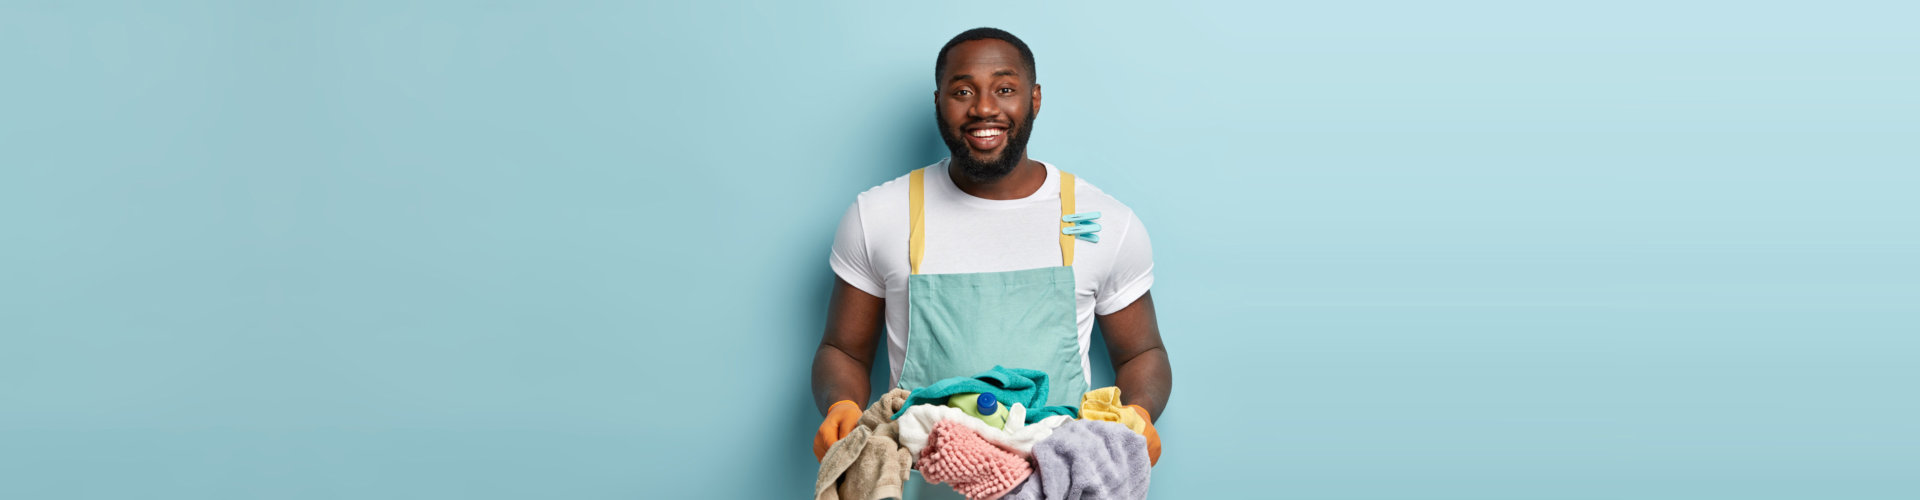 caregiver doing laundry